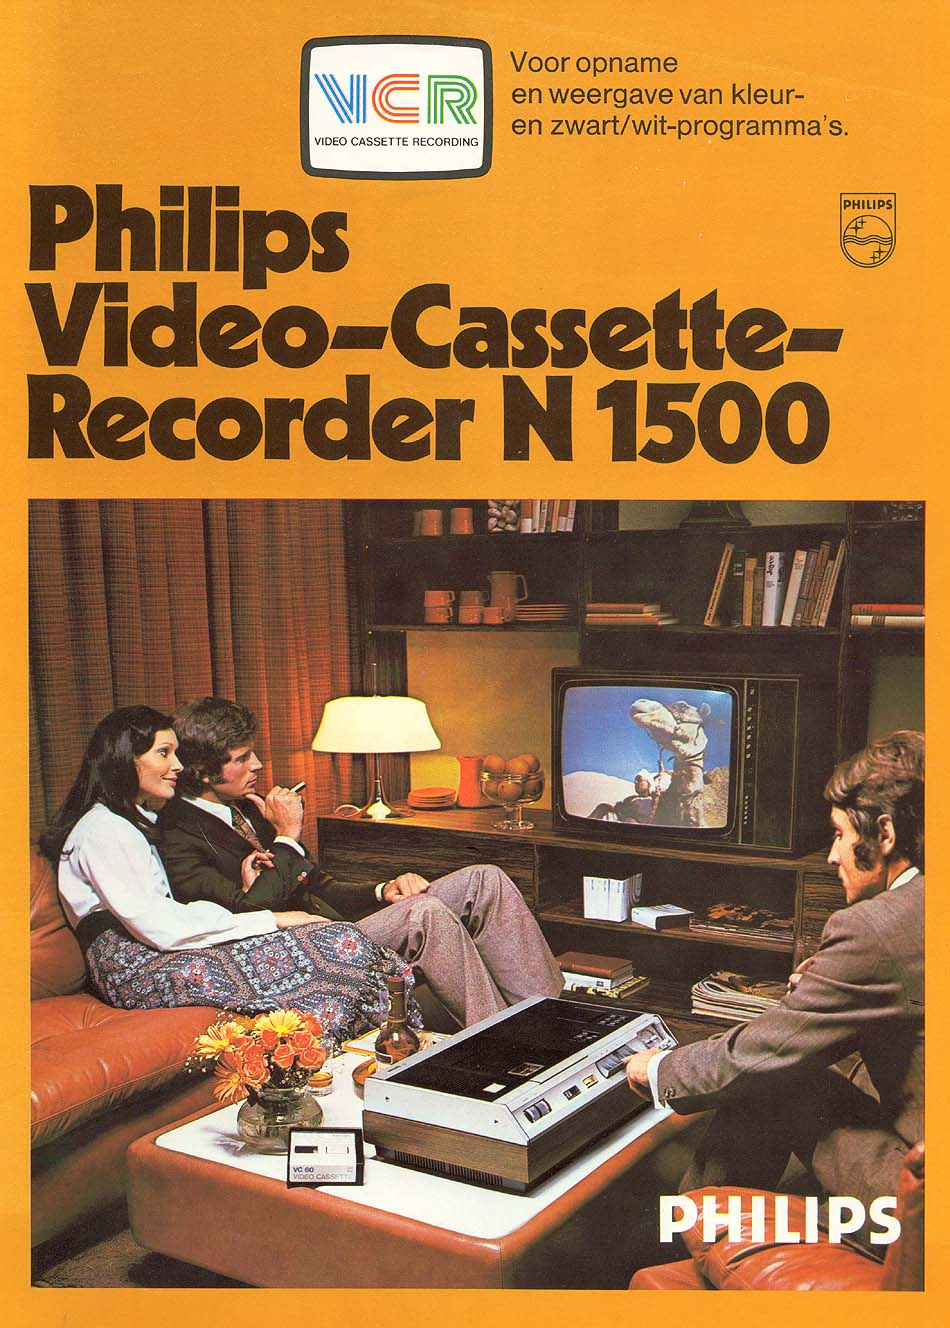 philips- viideoregistratore n1500 1972